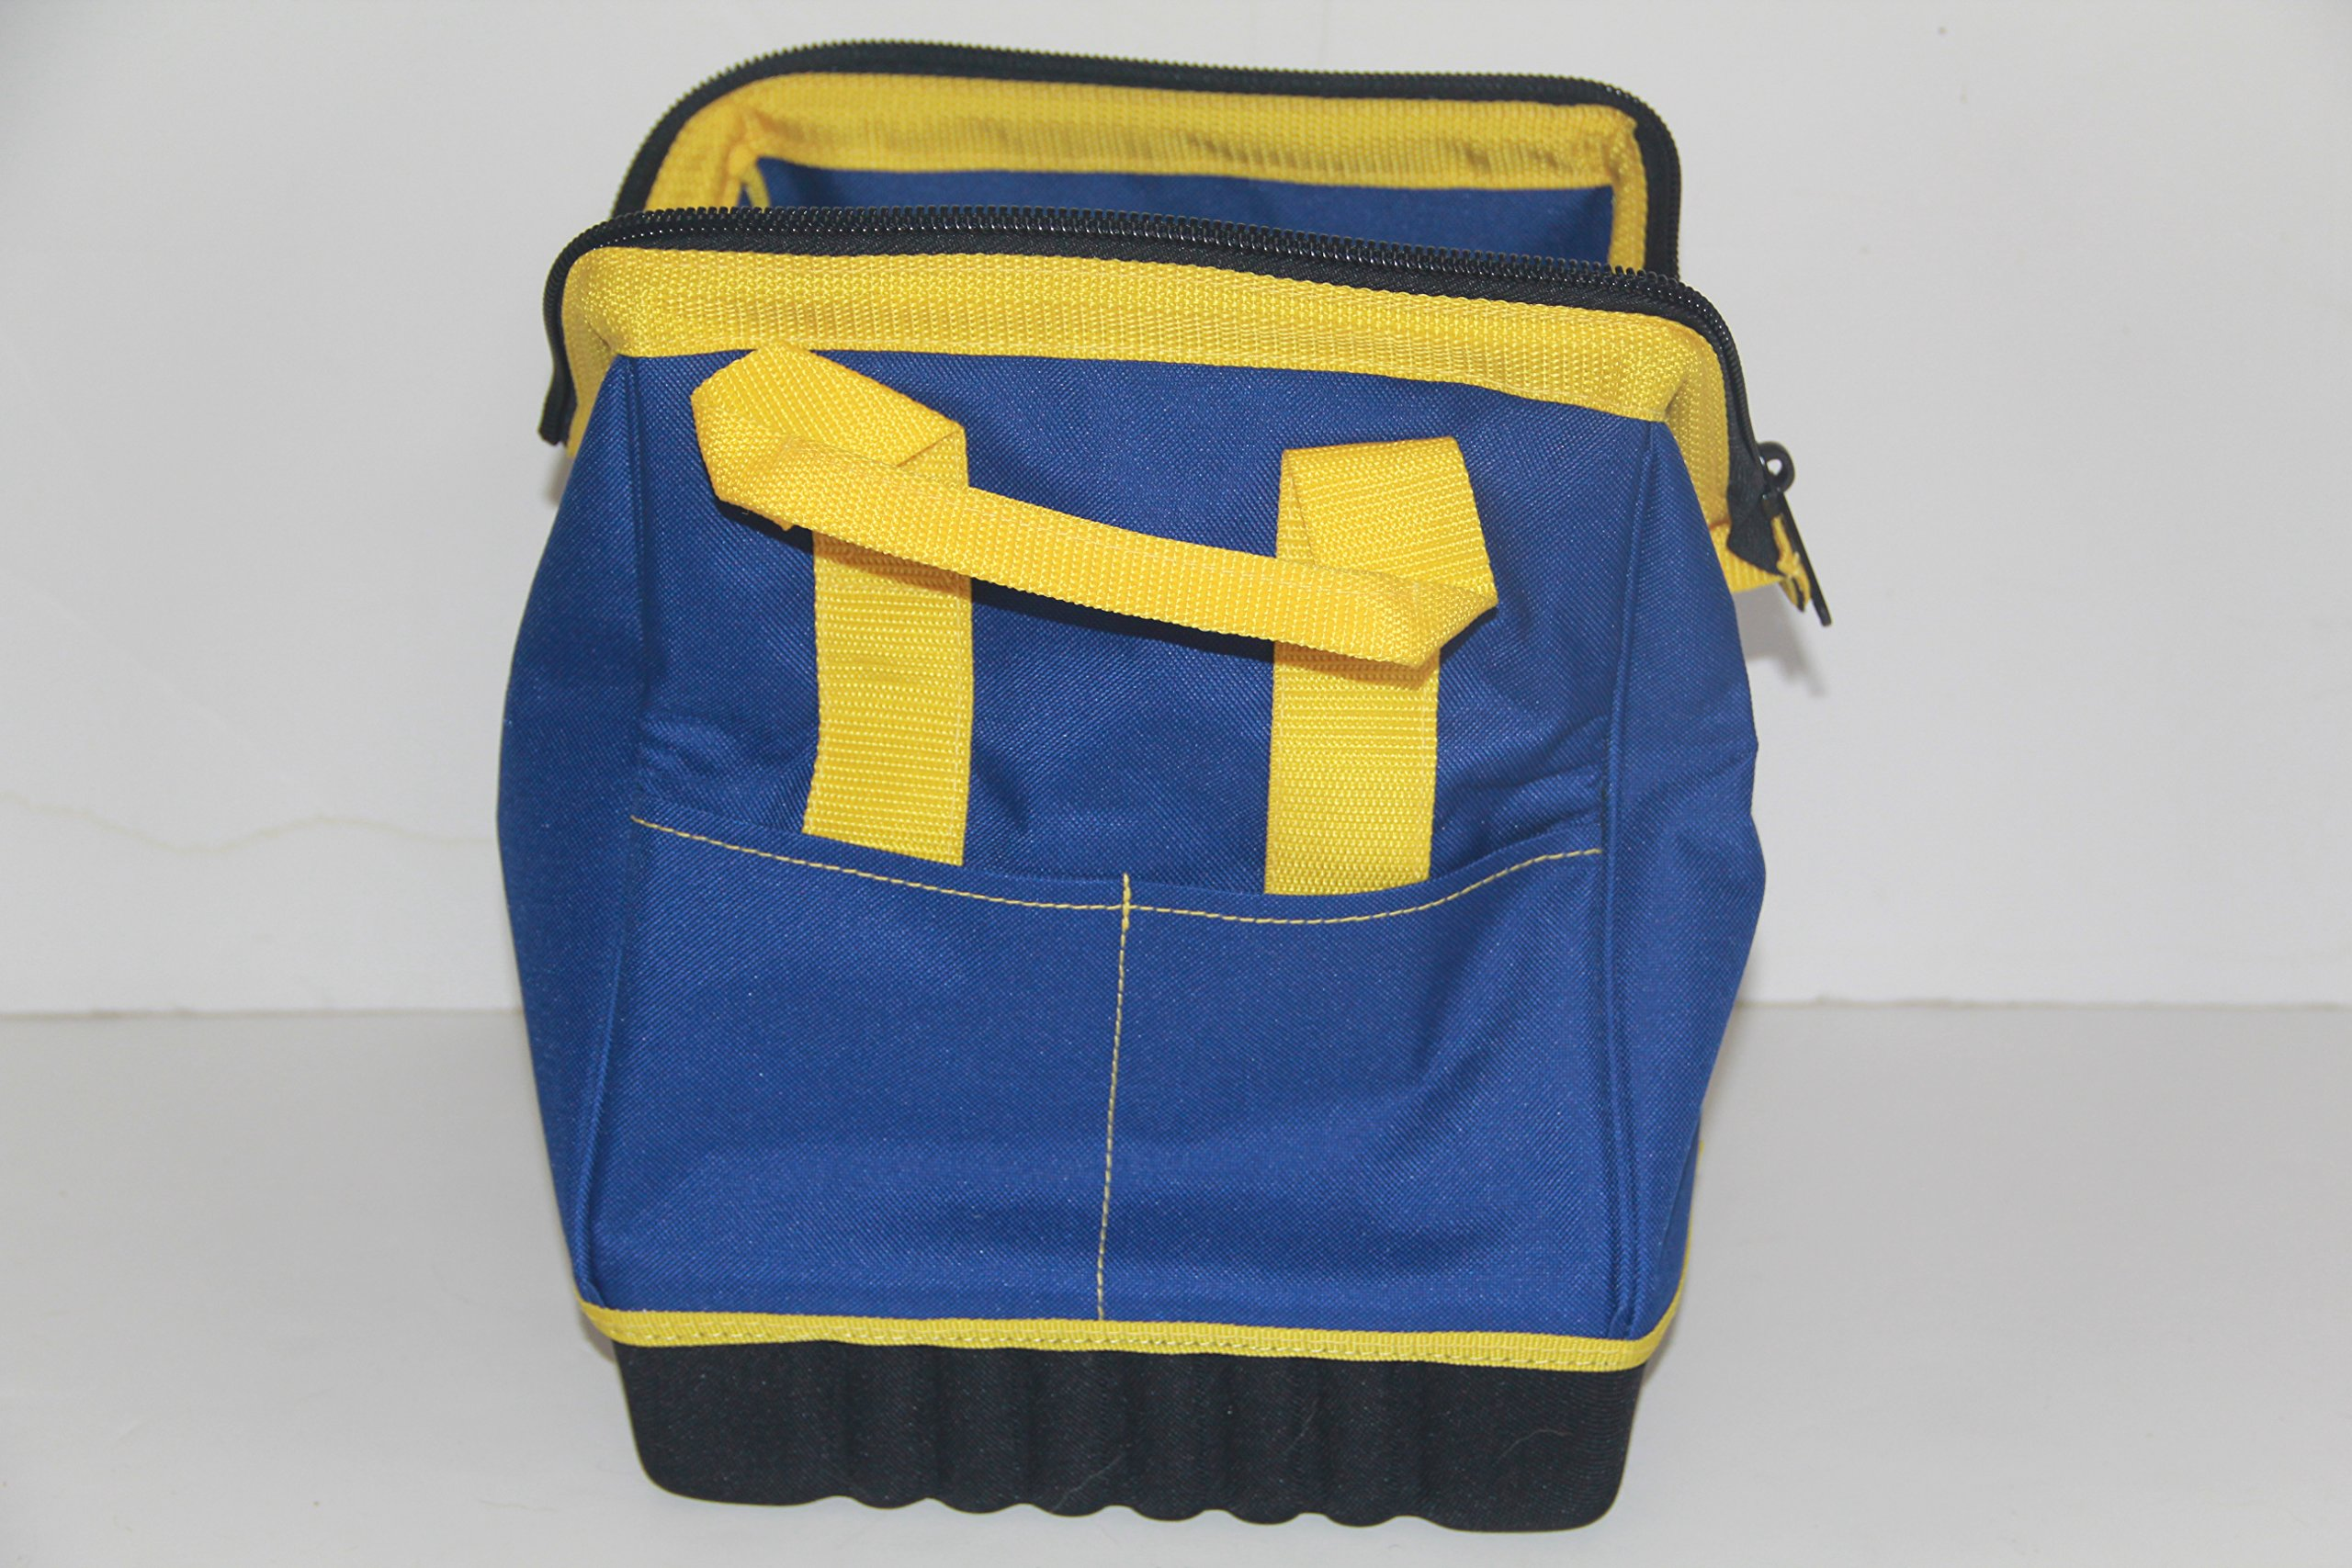 Extra Heavy Duty Nylon Bocce Bag - Blue with Yellow Handles by BuyBocceBalls